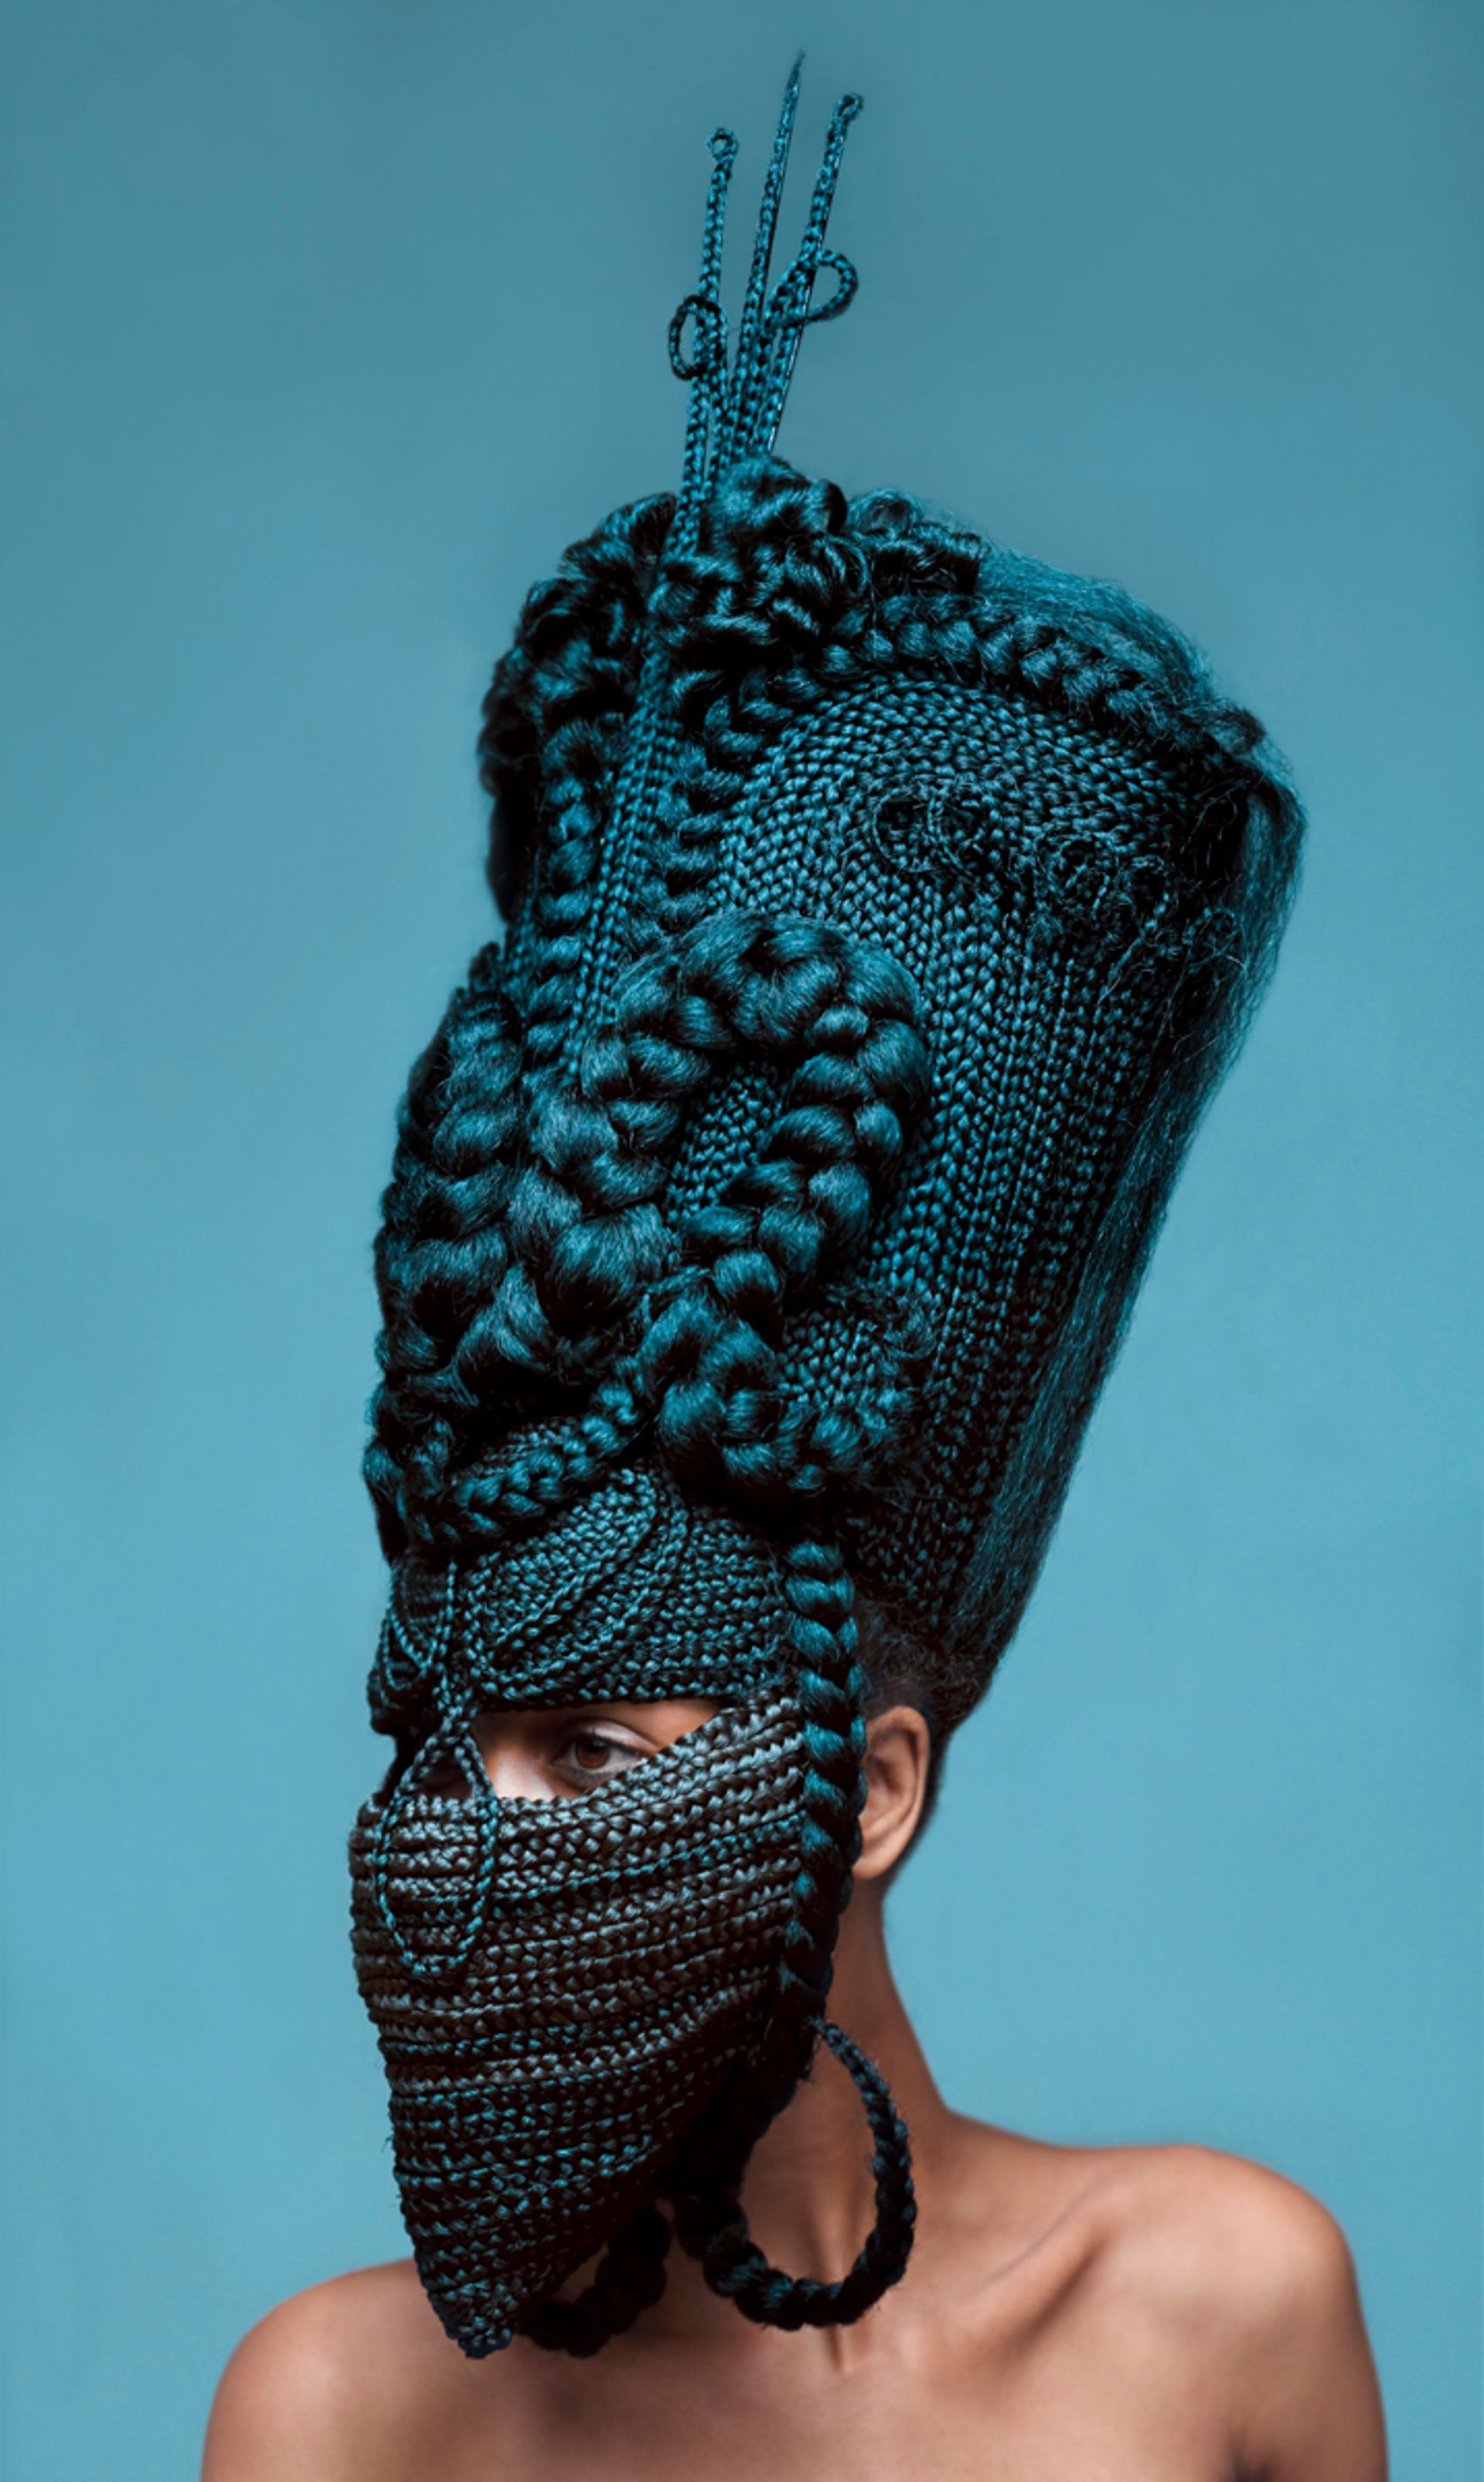 Delphine Diallo's Highness Blue will be included in The Stand's first auction this month Courtesy of the artist and MTArt Agency